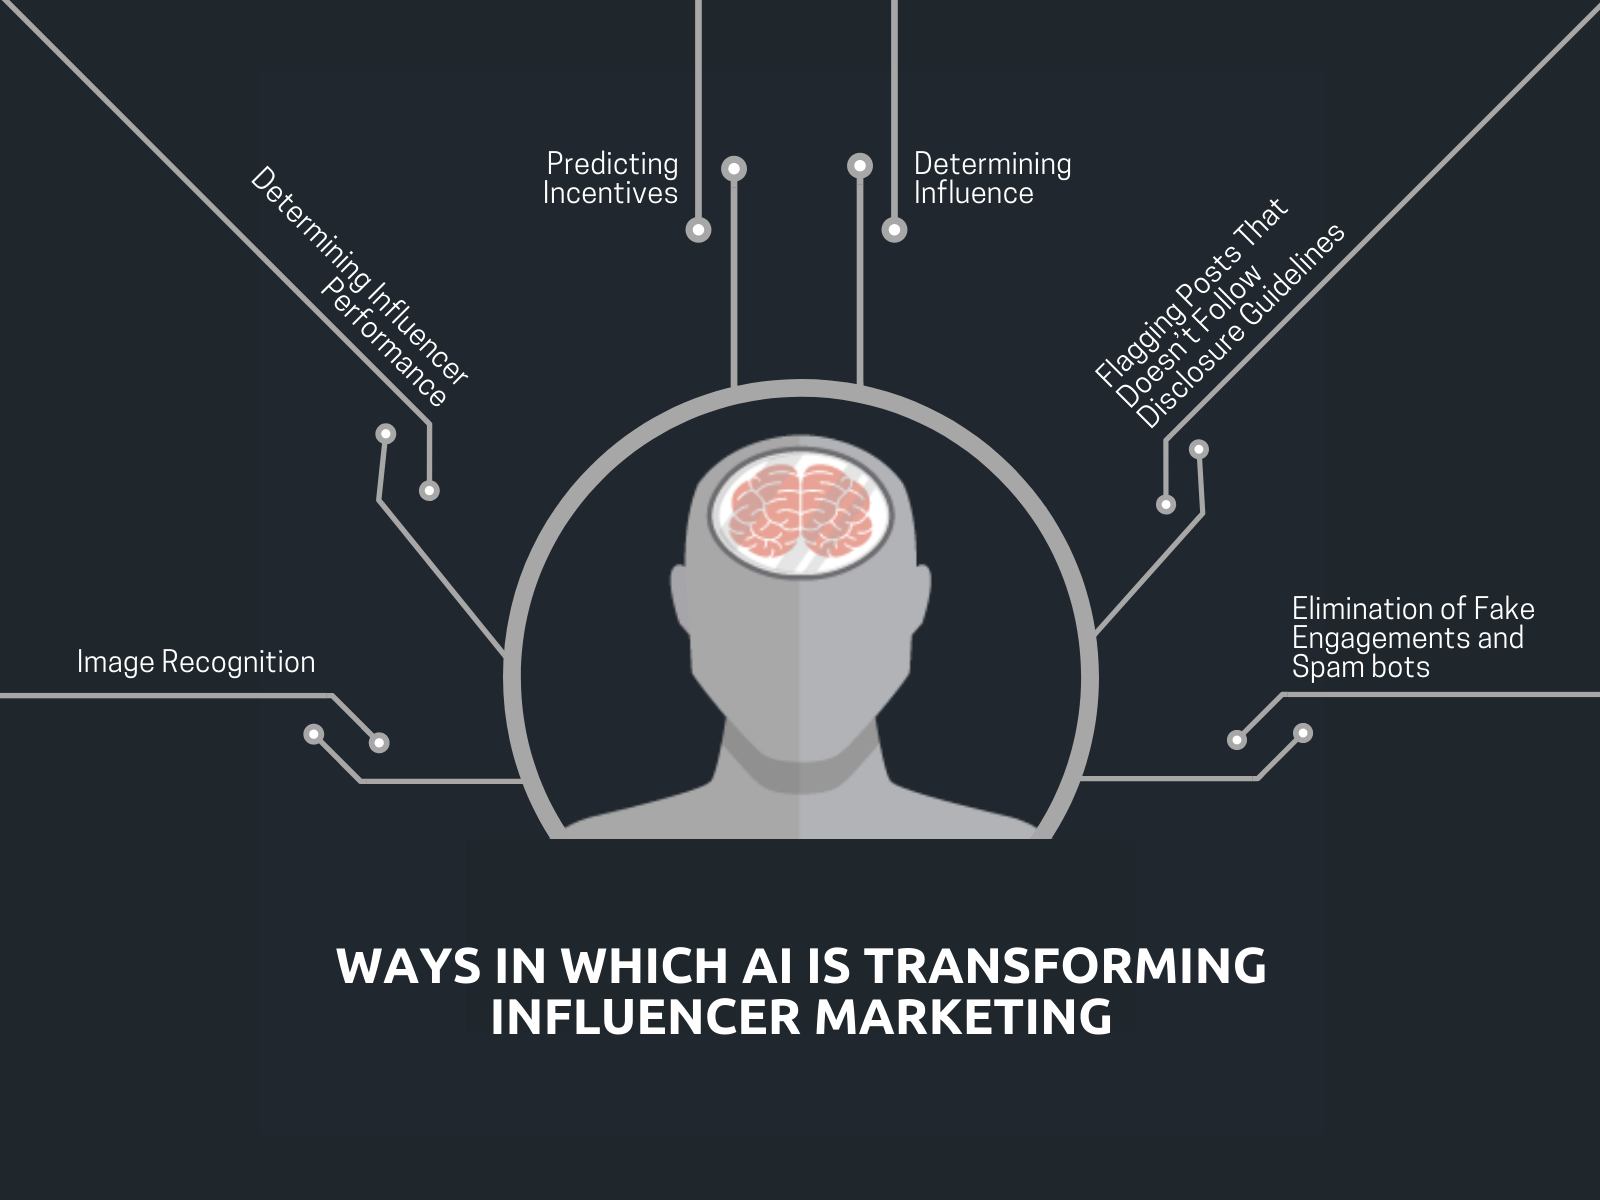 https://www.singlegrain.com/wp-content/uploads/2018/09/WAYS-IN-WHICH-AI-IS-TRANSFORMING-INFLUENCER-MARKETING.png